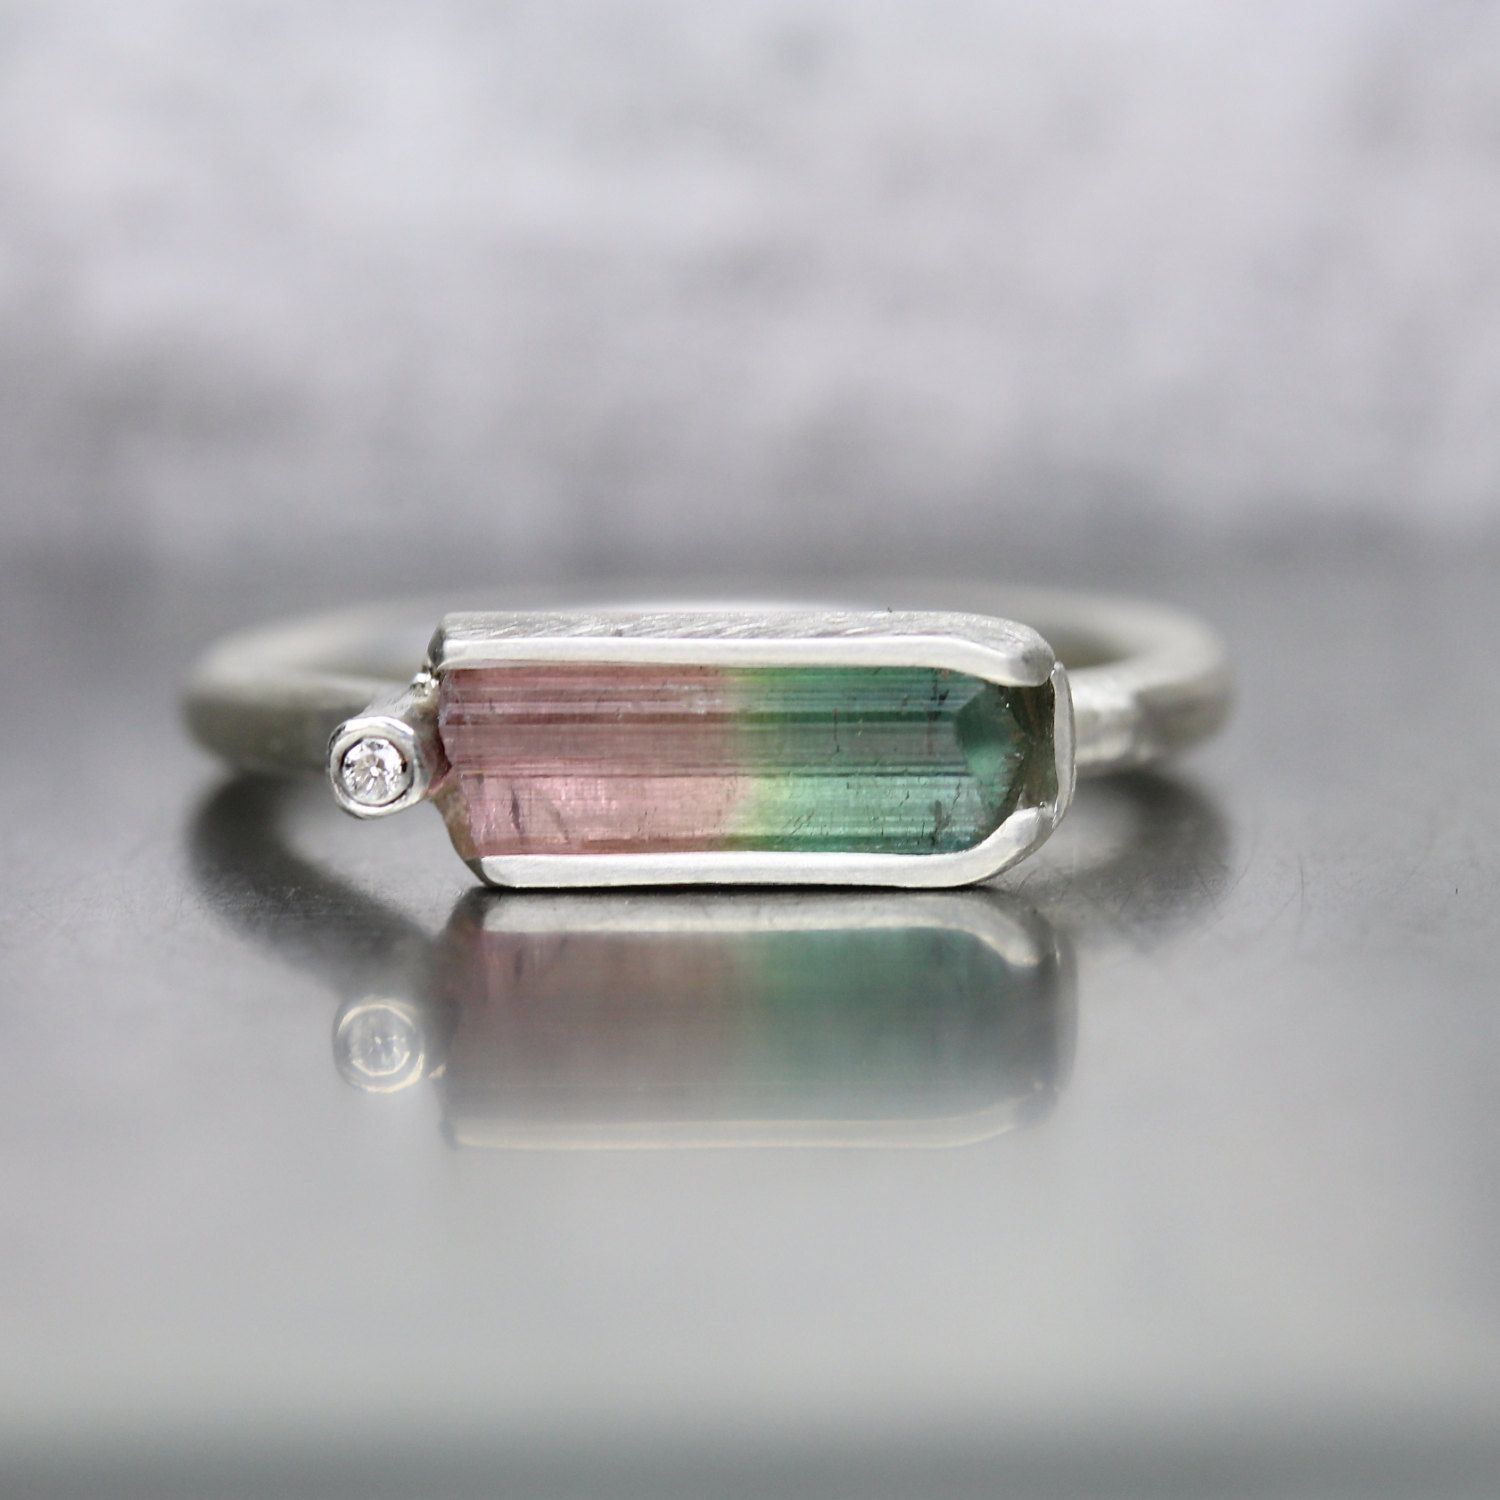 6064bc88ba4218 Raw Watermelon Tourmaline Diamond Ring Silver Modern Pink Green Unique  Rough Gemstone - Watermelon Cradle by NangijalaJewelry on Etsy